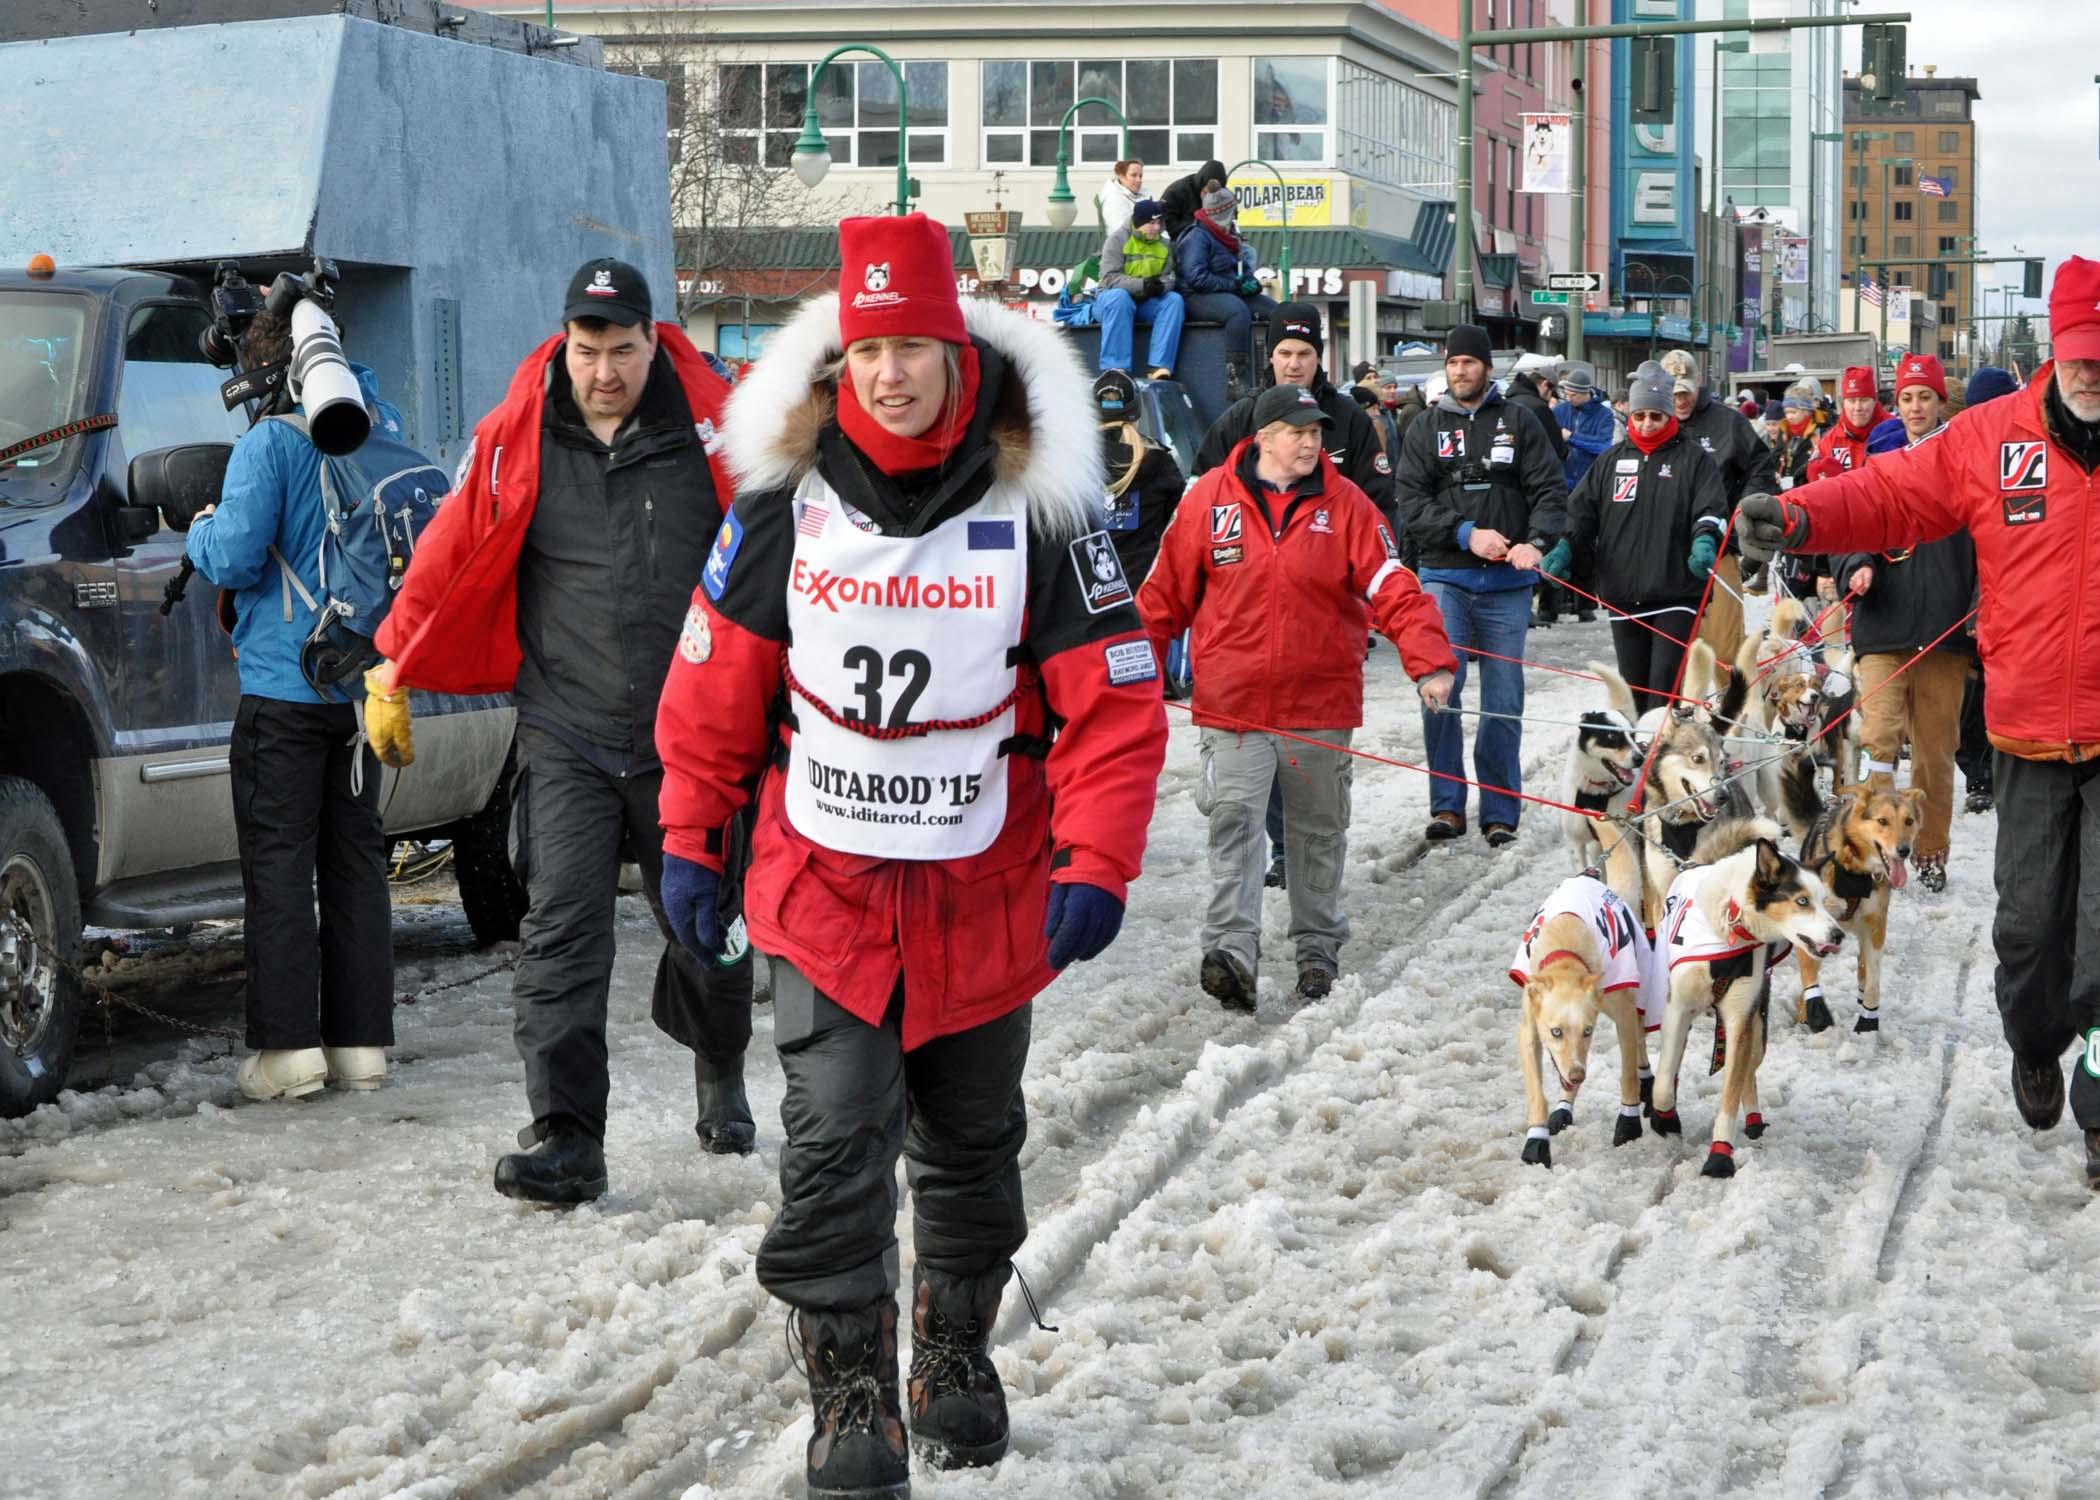 Aliy Zirkle makes her way to the starting line for the ceremonial start of the 2014 Iditarod. (Photo By Patrick Yack - Alaska Public Media)